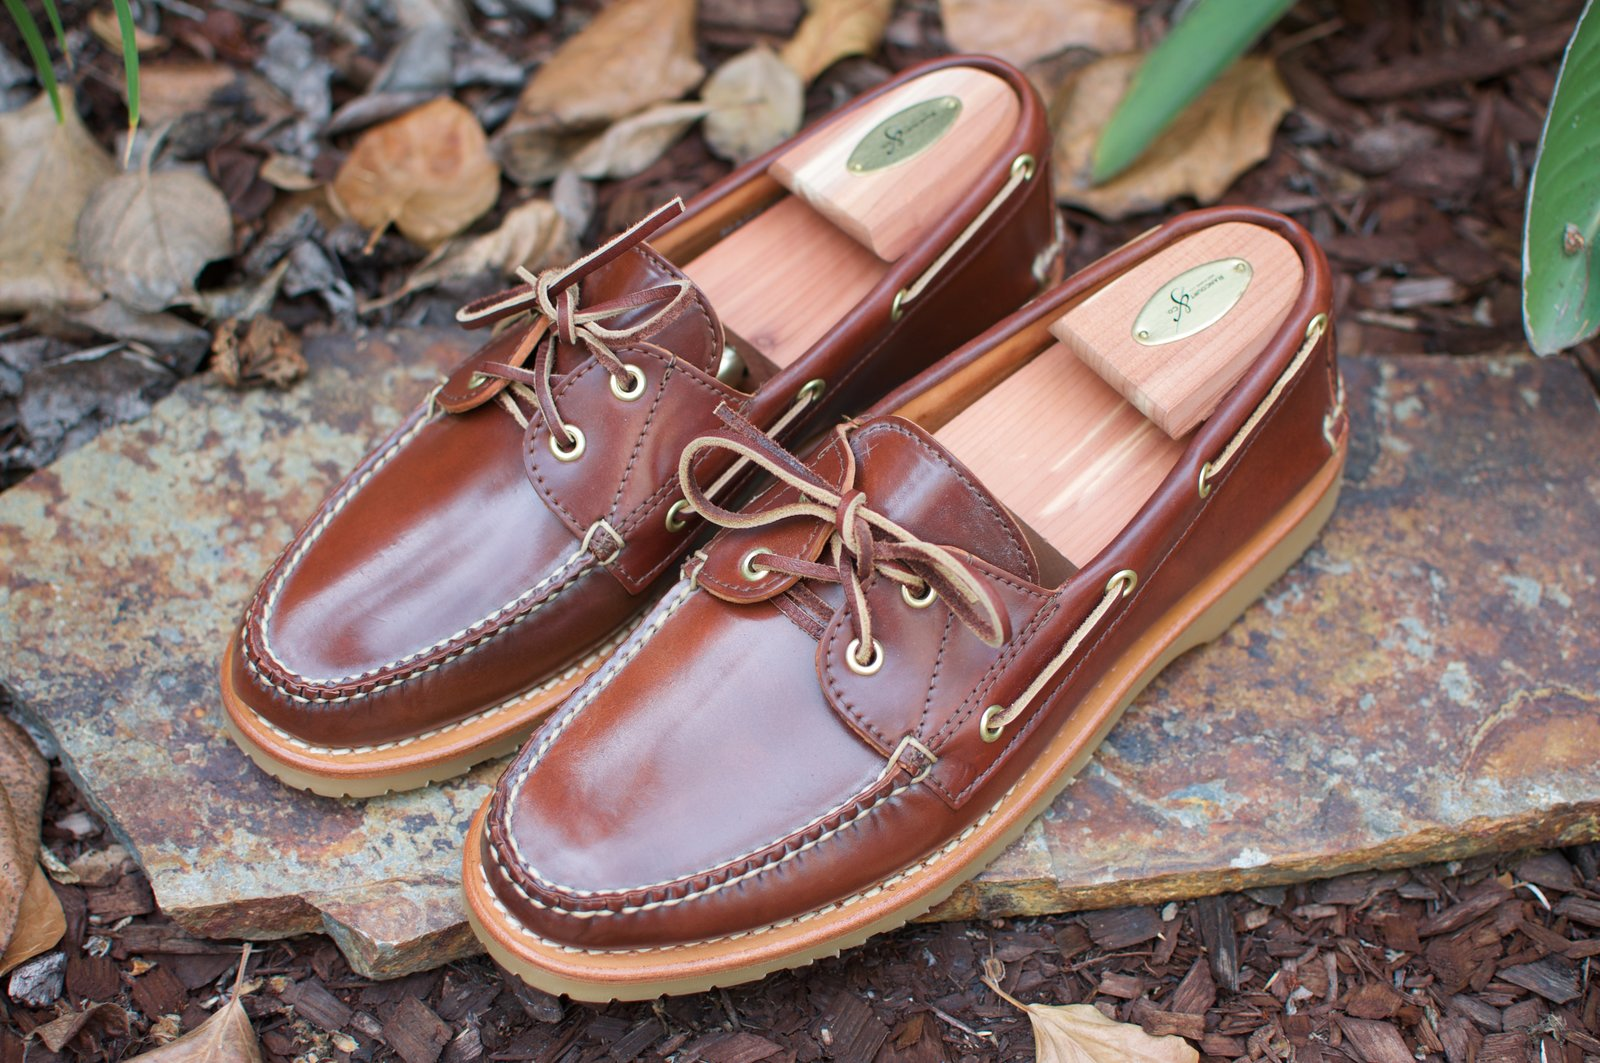 Rancourt Color 4 Shell Cordovan Boat Shoes - 2020-07-24 - 1.jpg